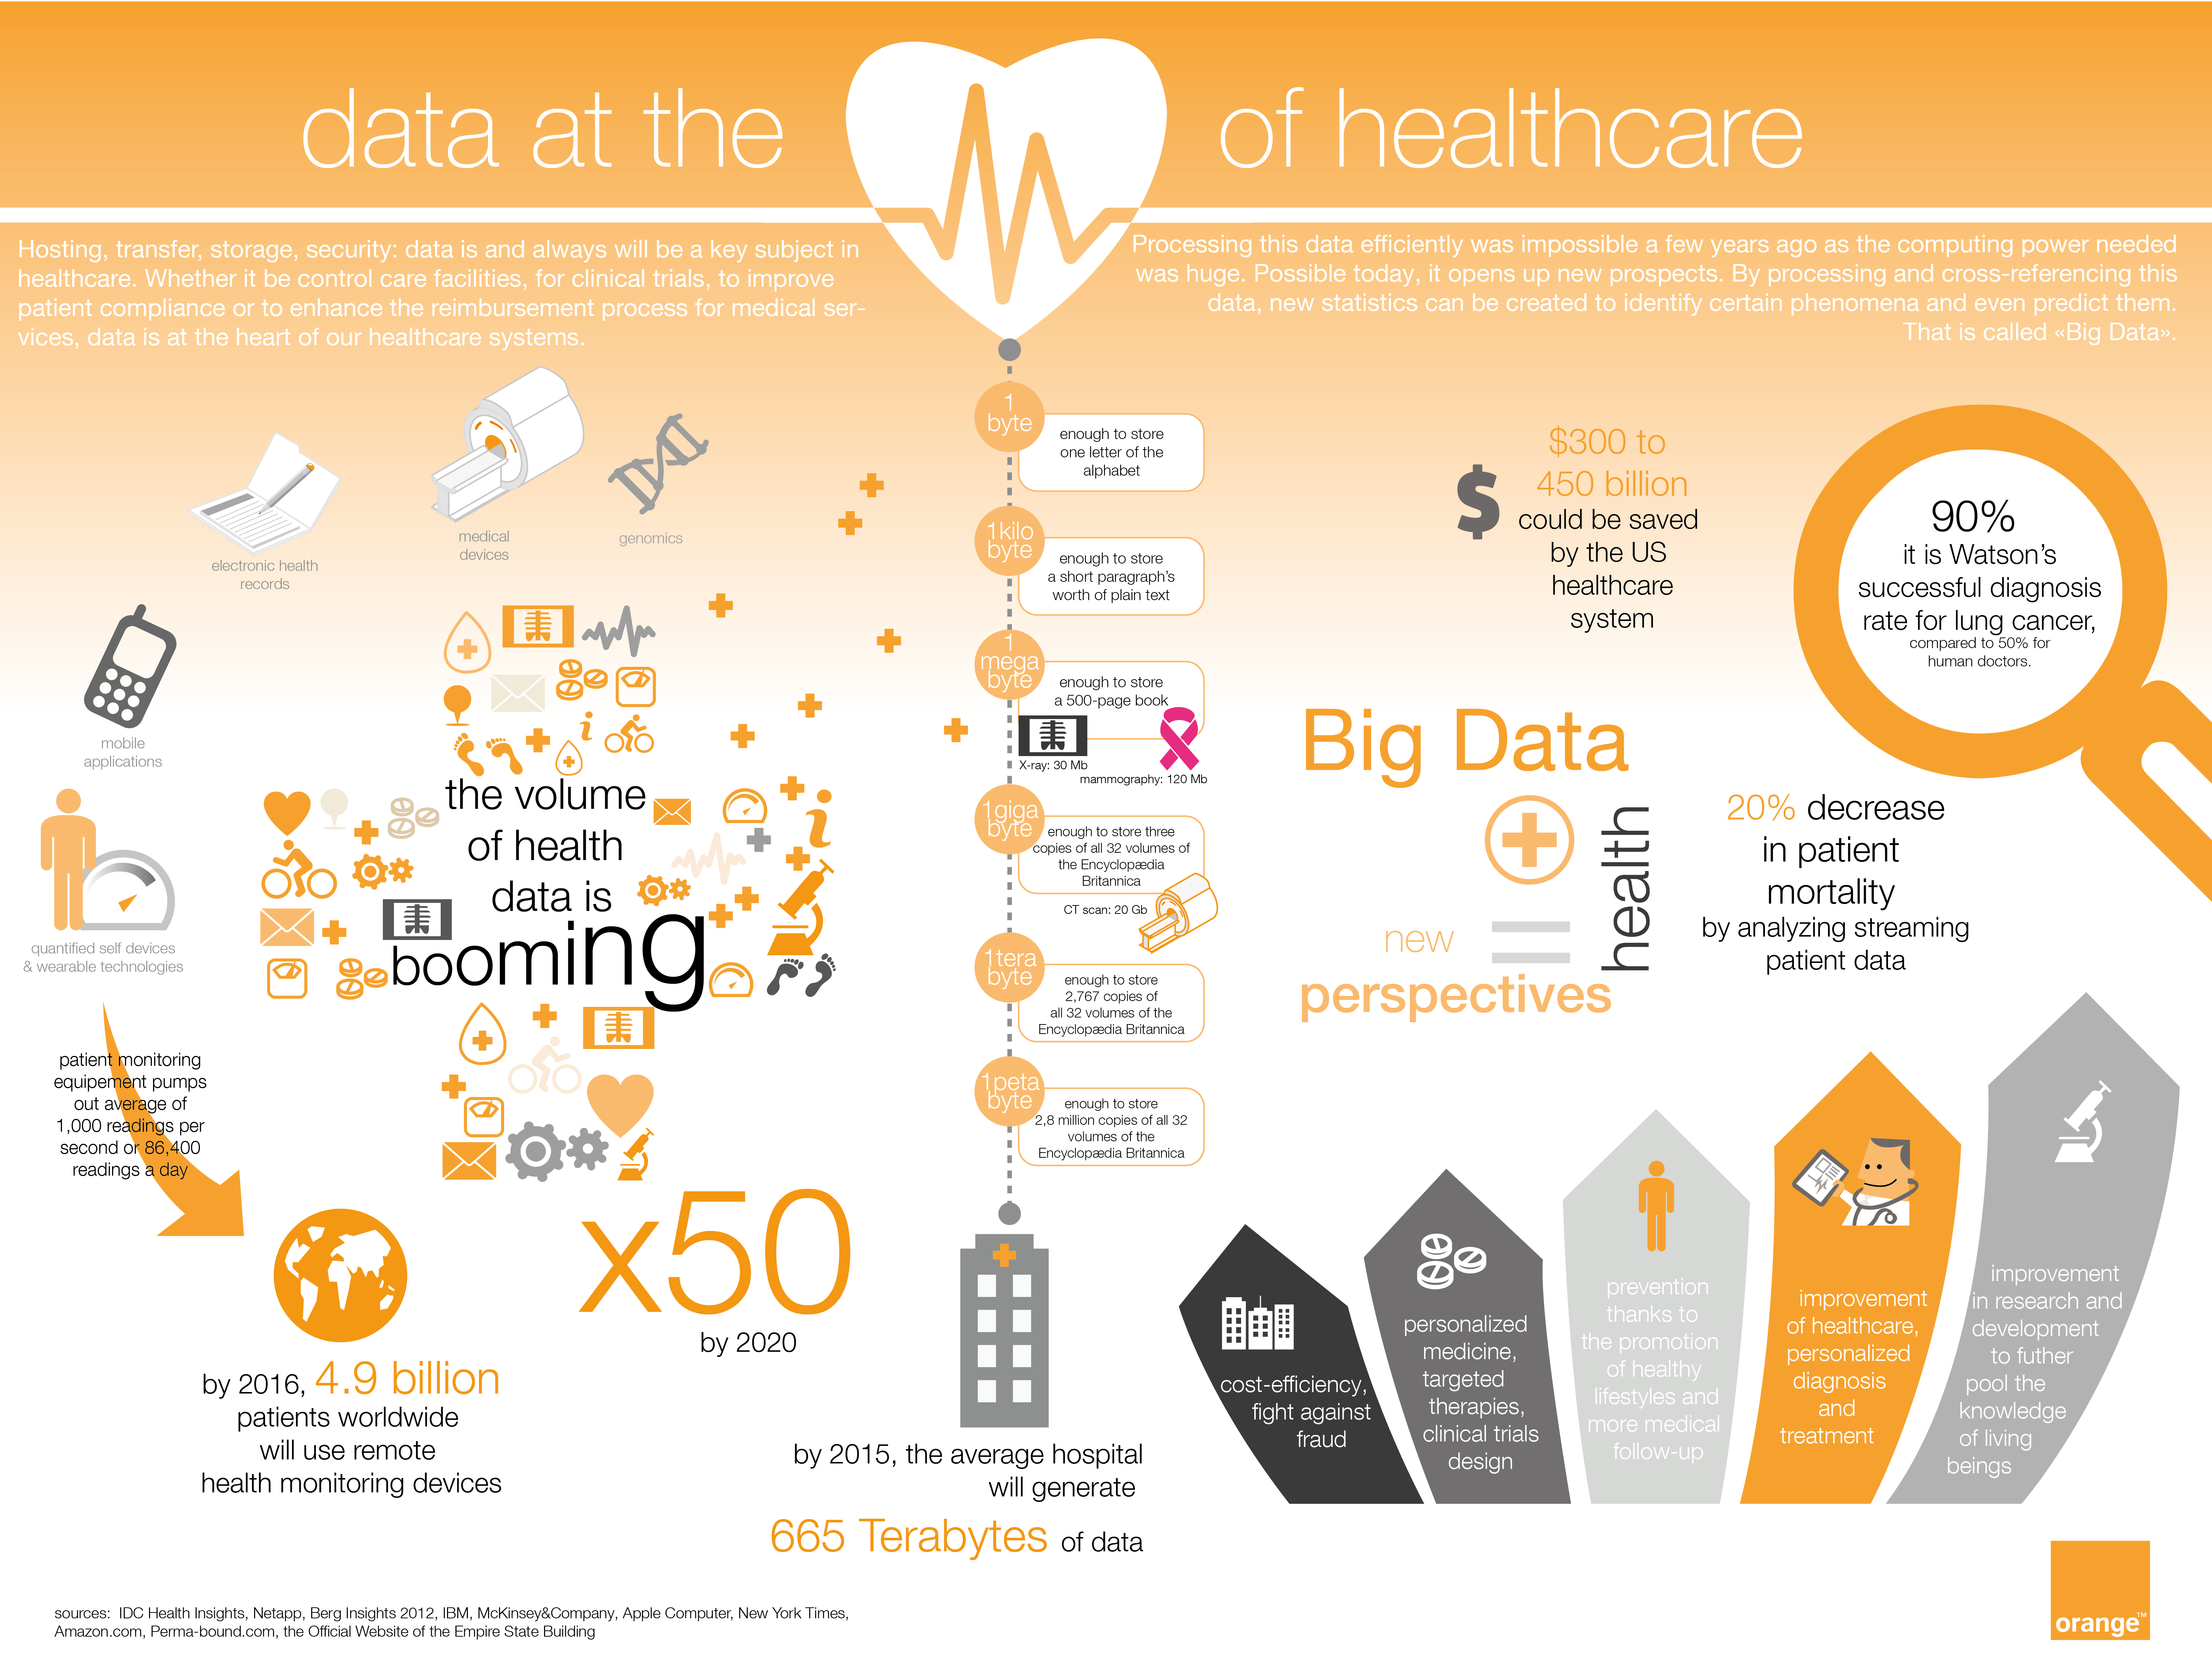 [infographic] data at the heart of healthcare